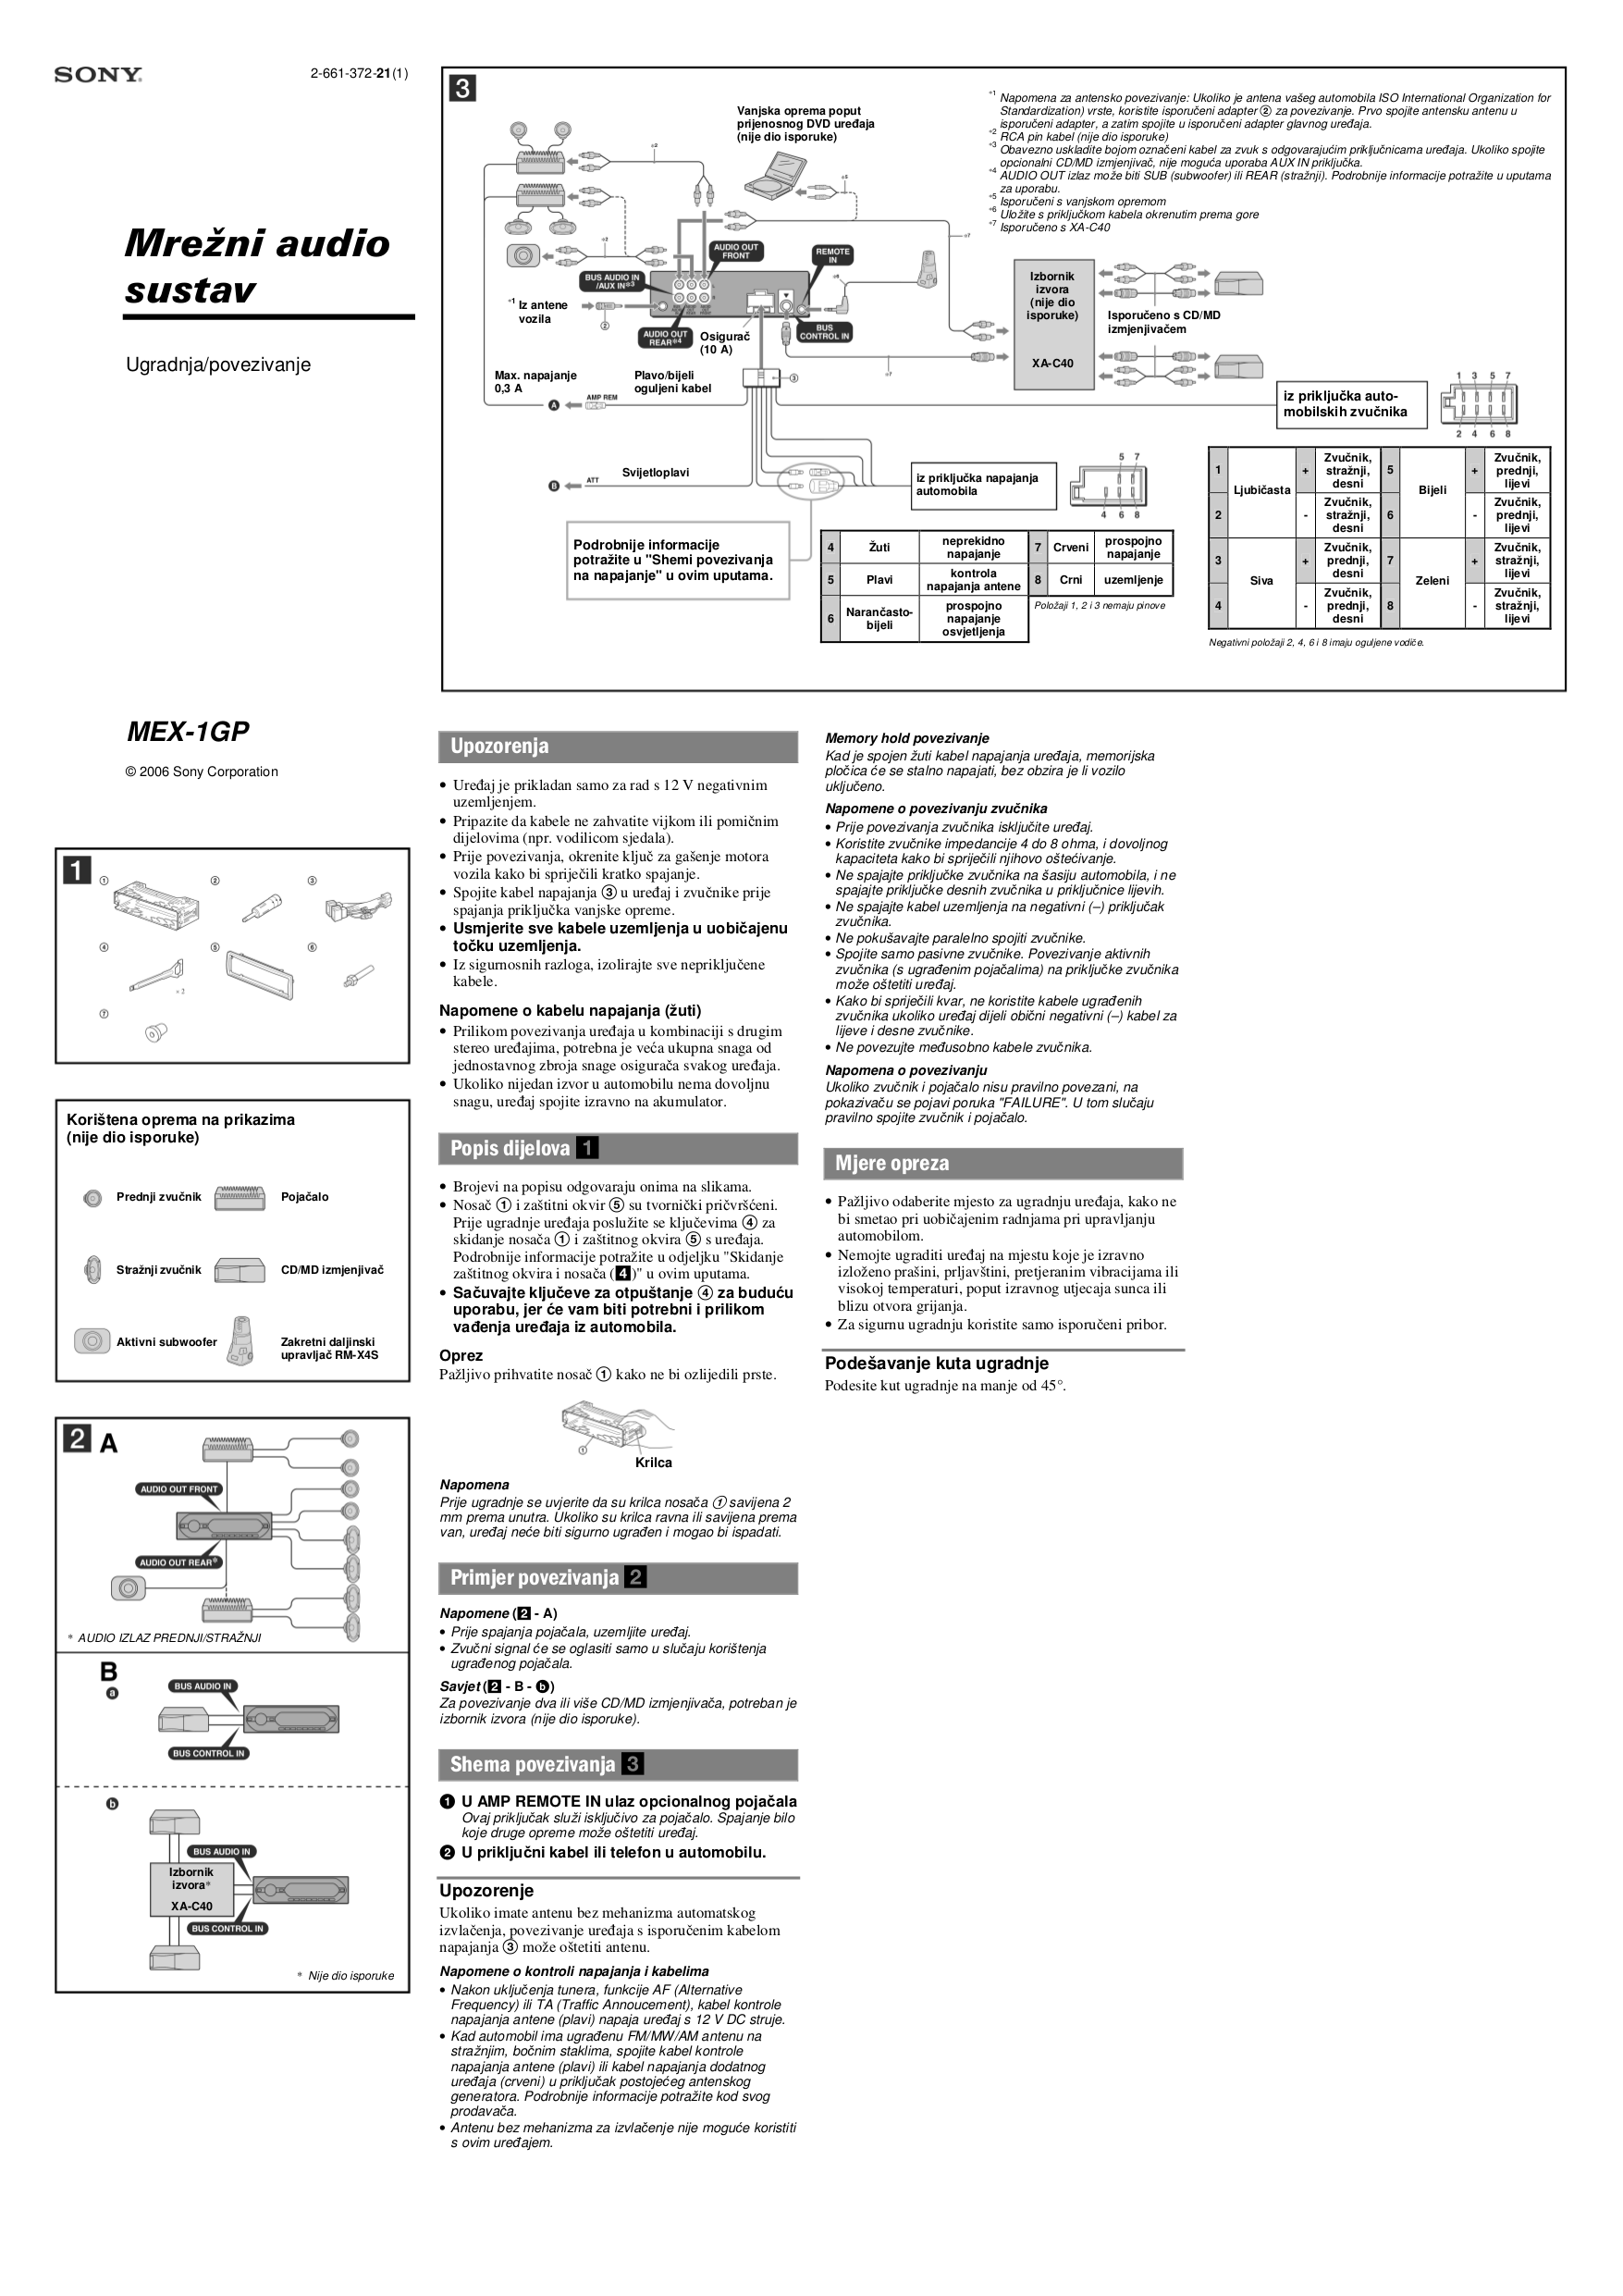 Download Free Pdf For Sony Mex 1gp Car Receiver Manual Cdx F7710 Wiring Diagram